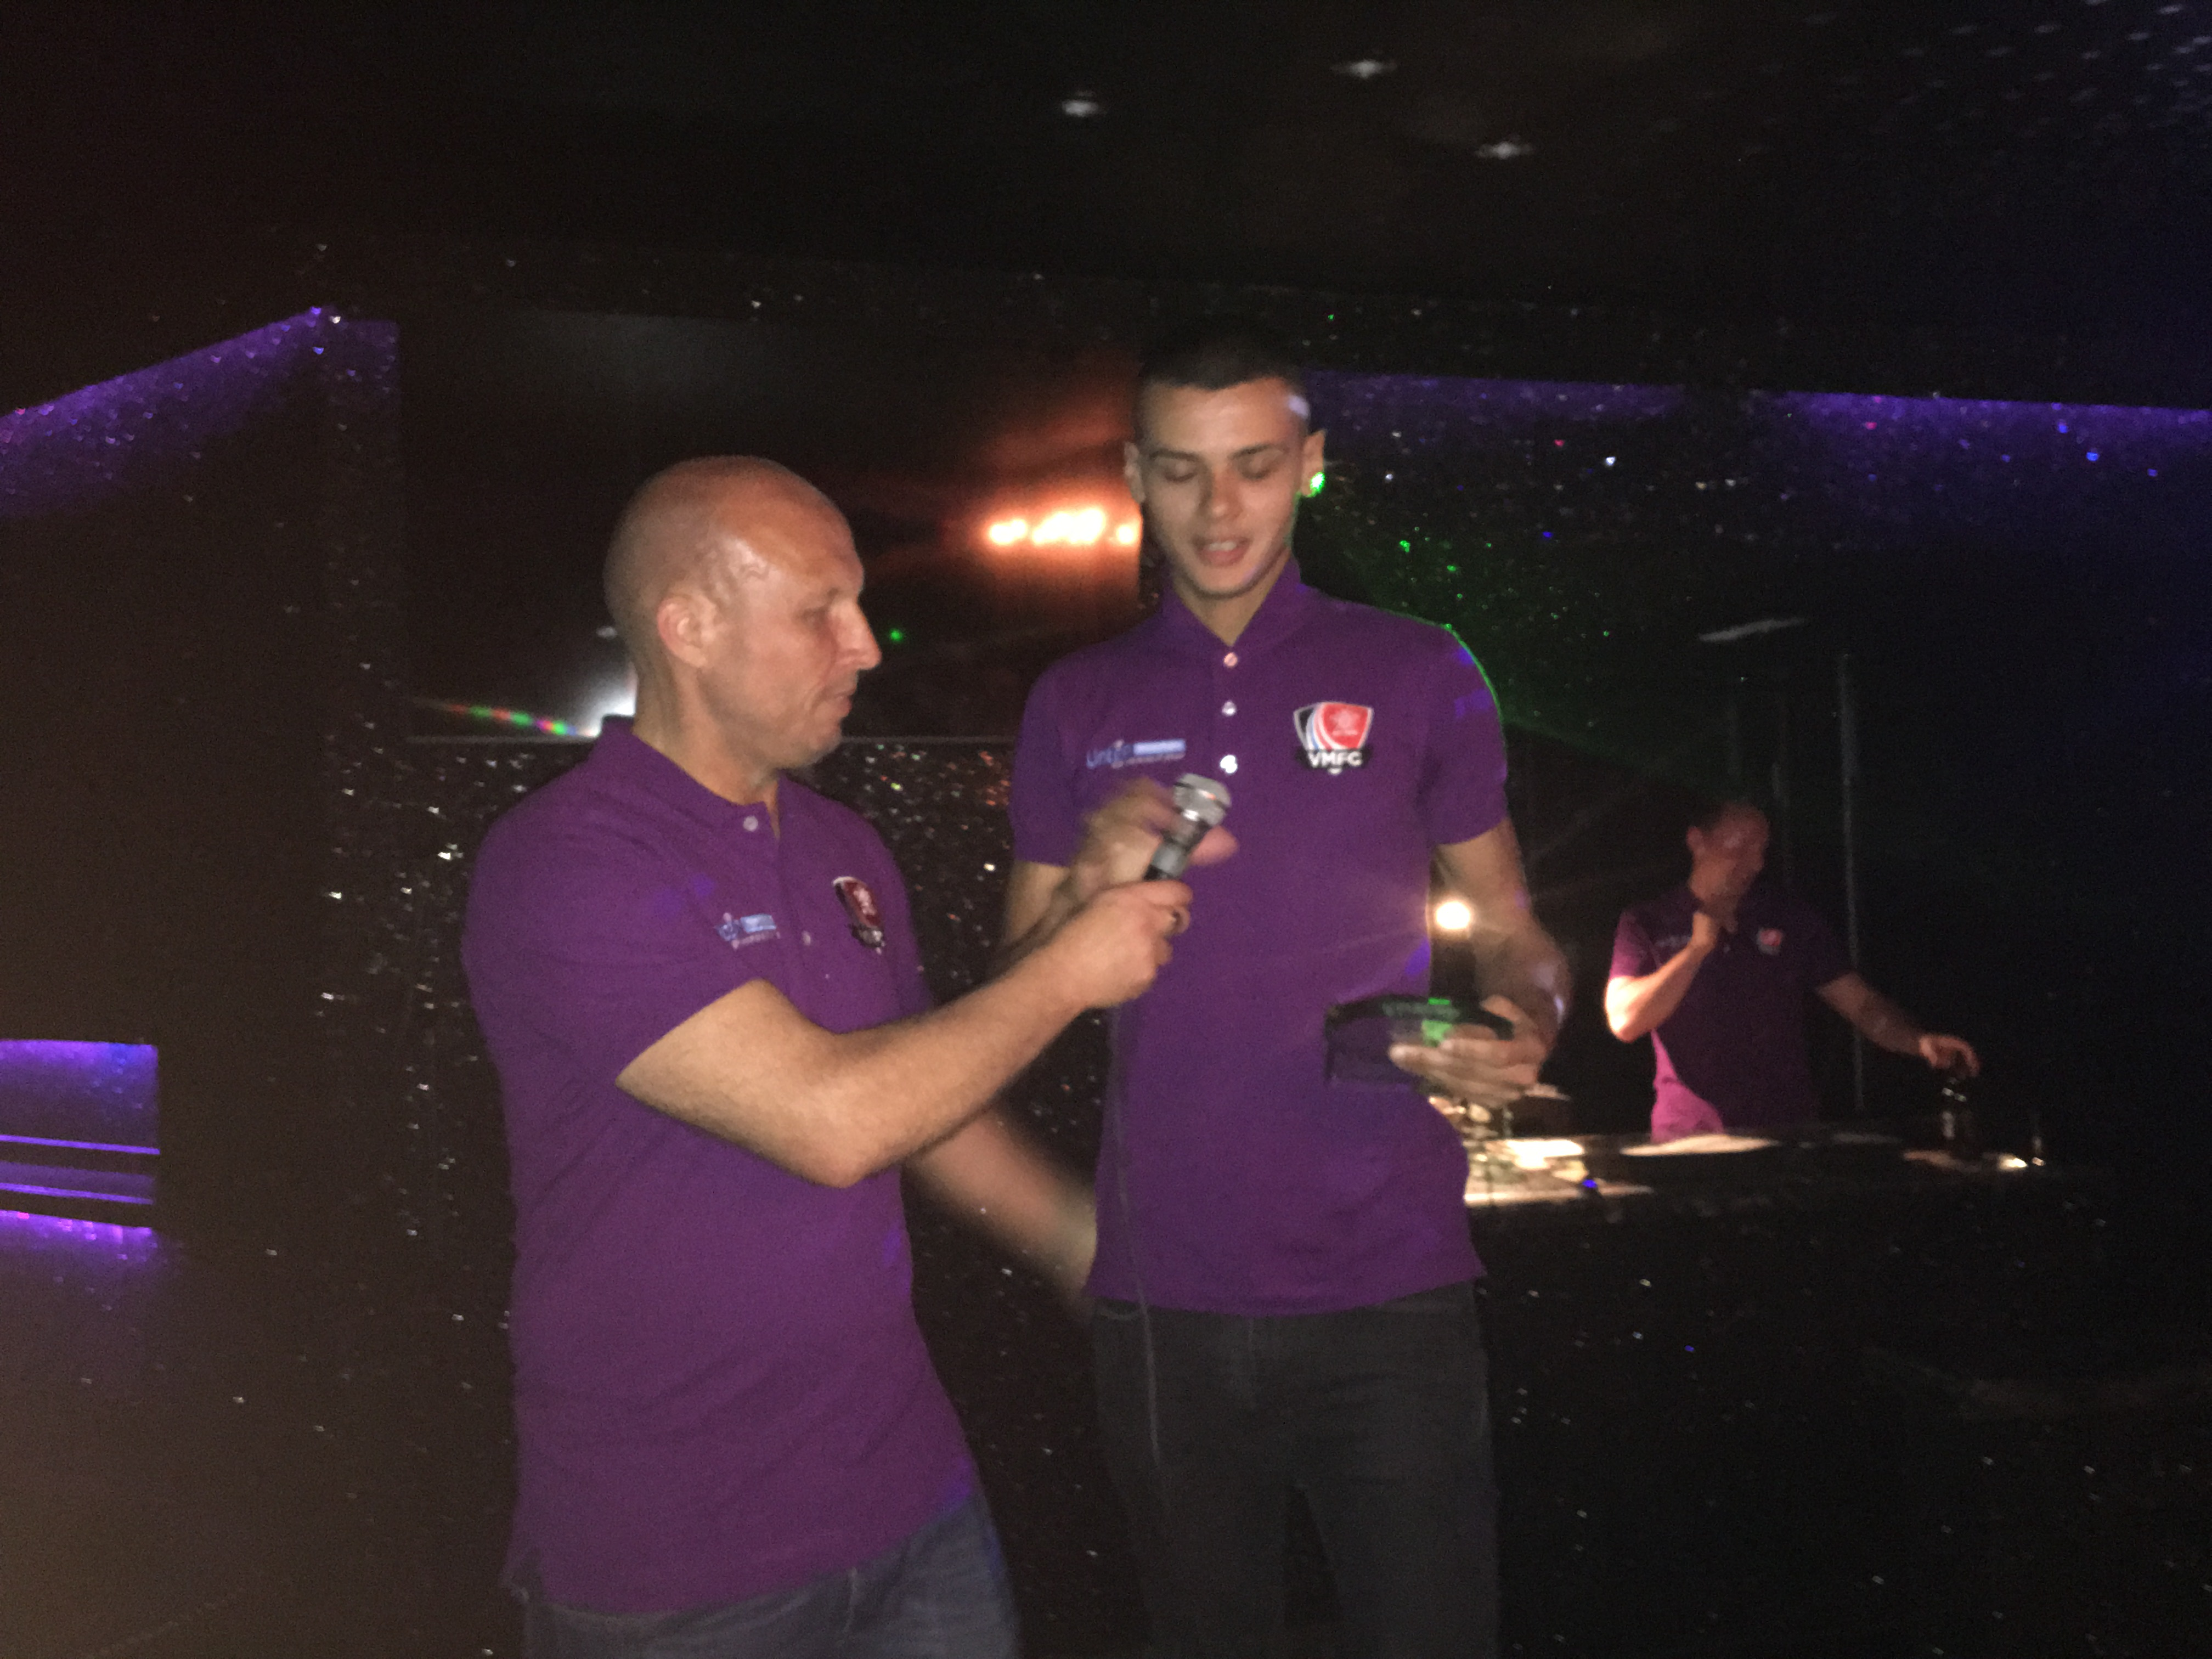 VMFC annual awards 2015-16